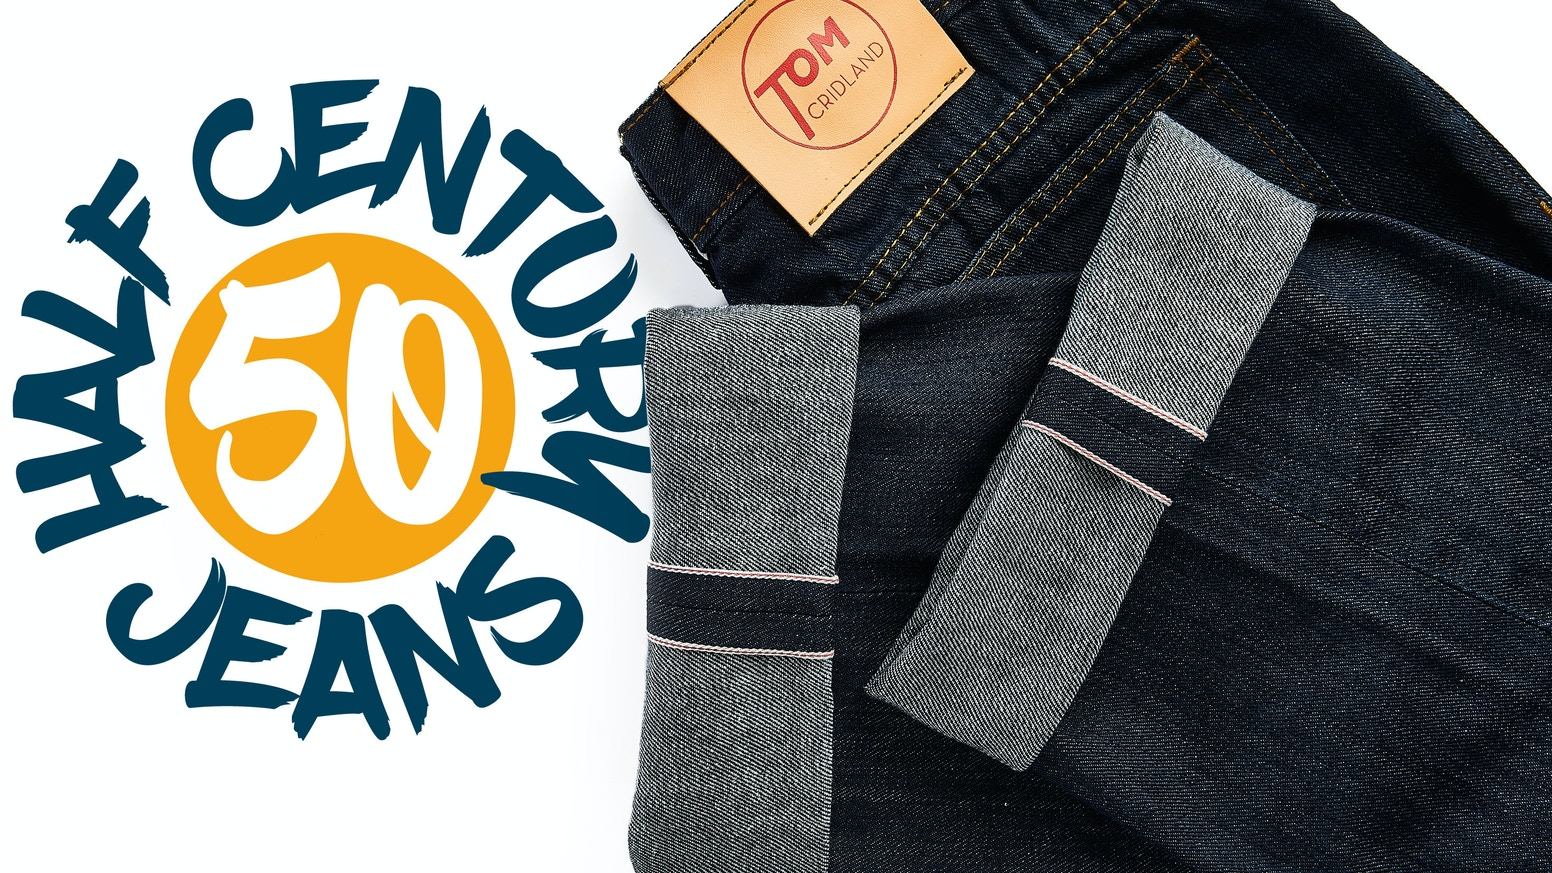 Insanely durable selvedge denim, backed with a 50 Year Guarantee.